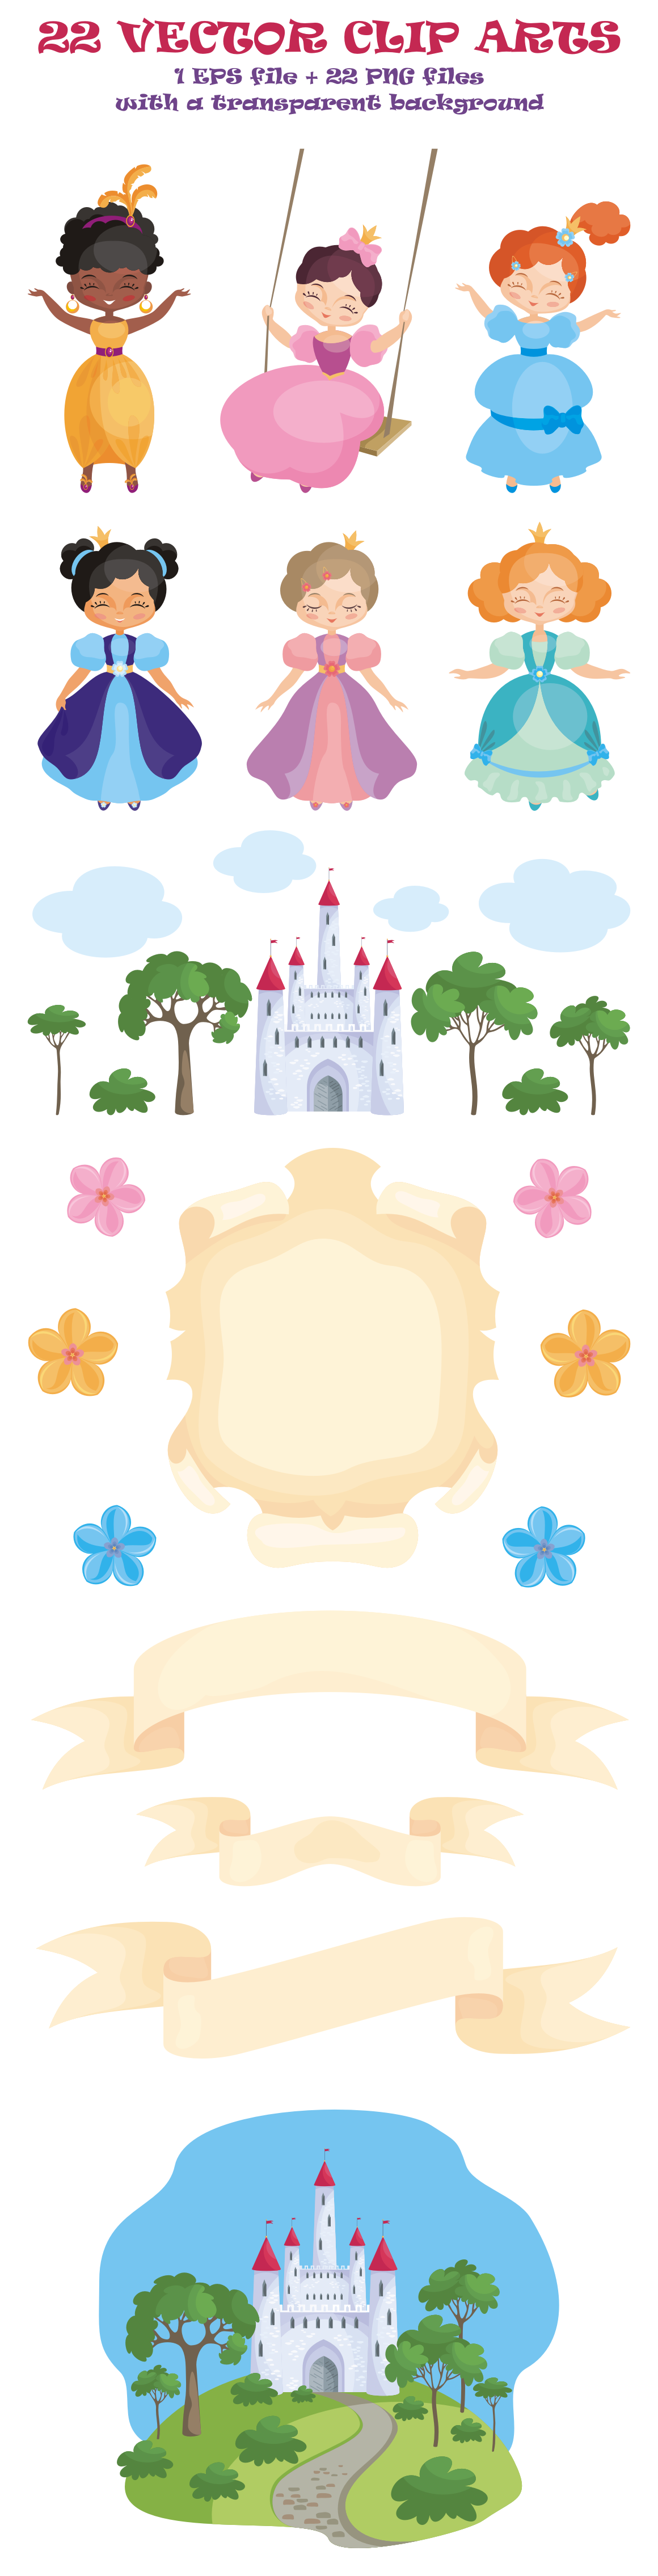 Princesses. Vector clip arts.